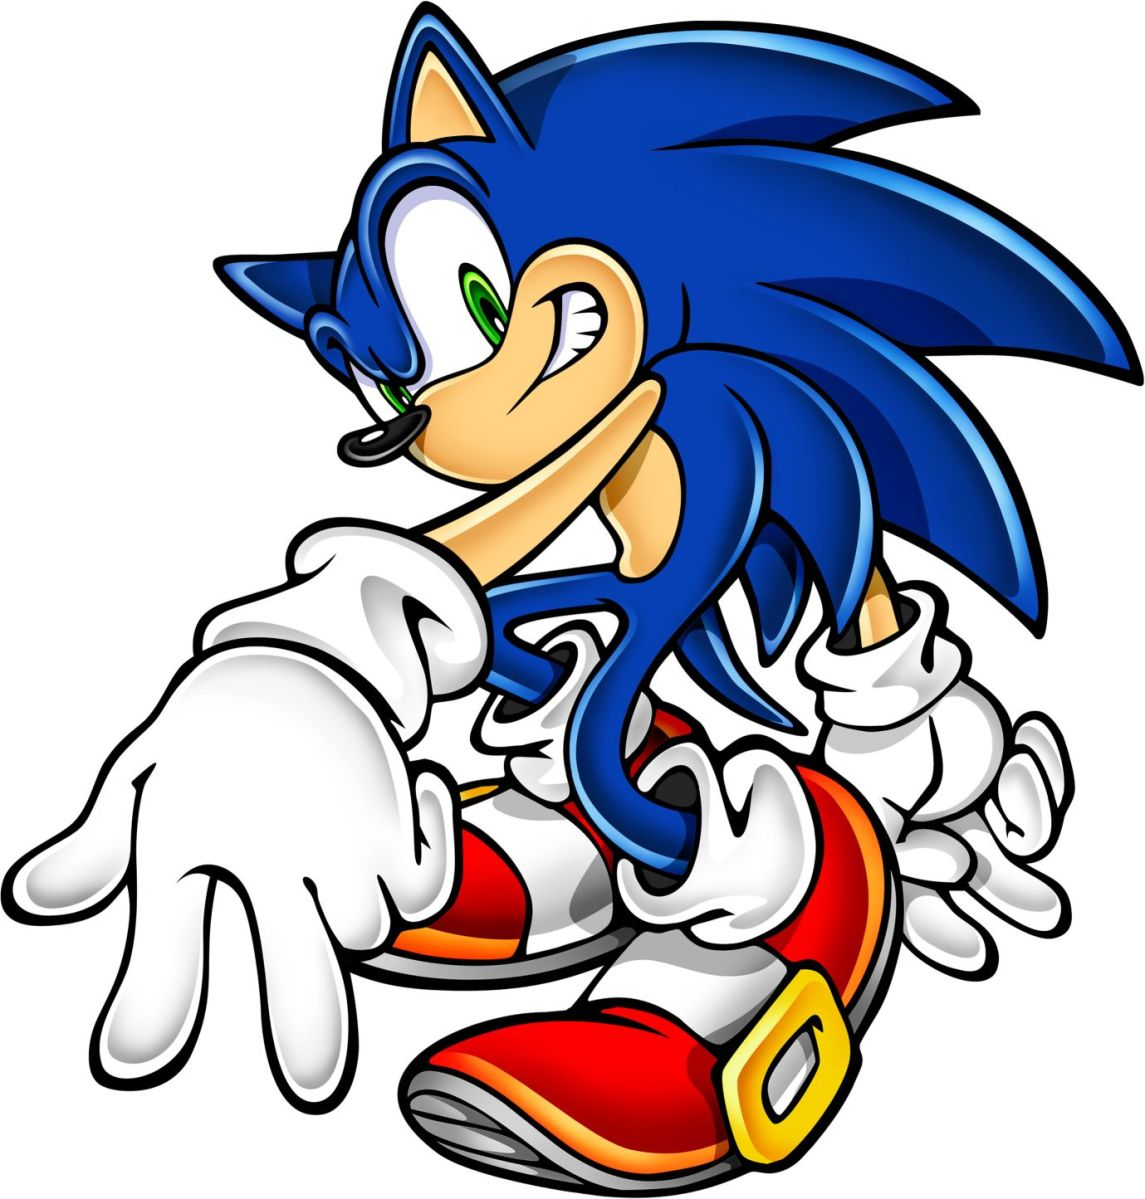 The Sonic The Hedgehog Movie Is Slated To Release On ...